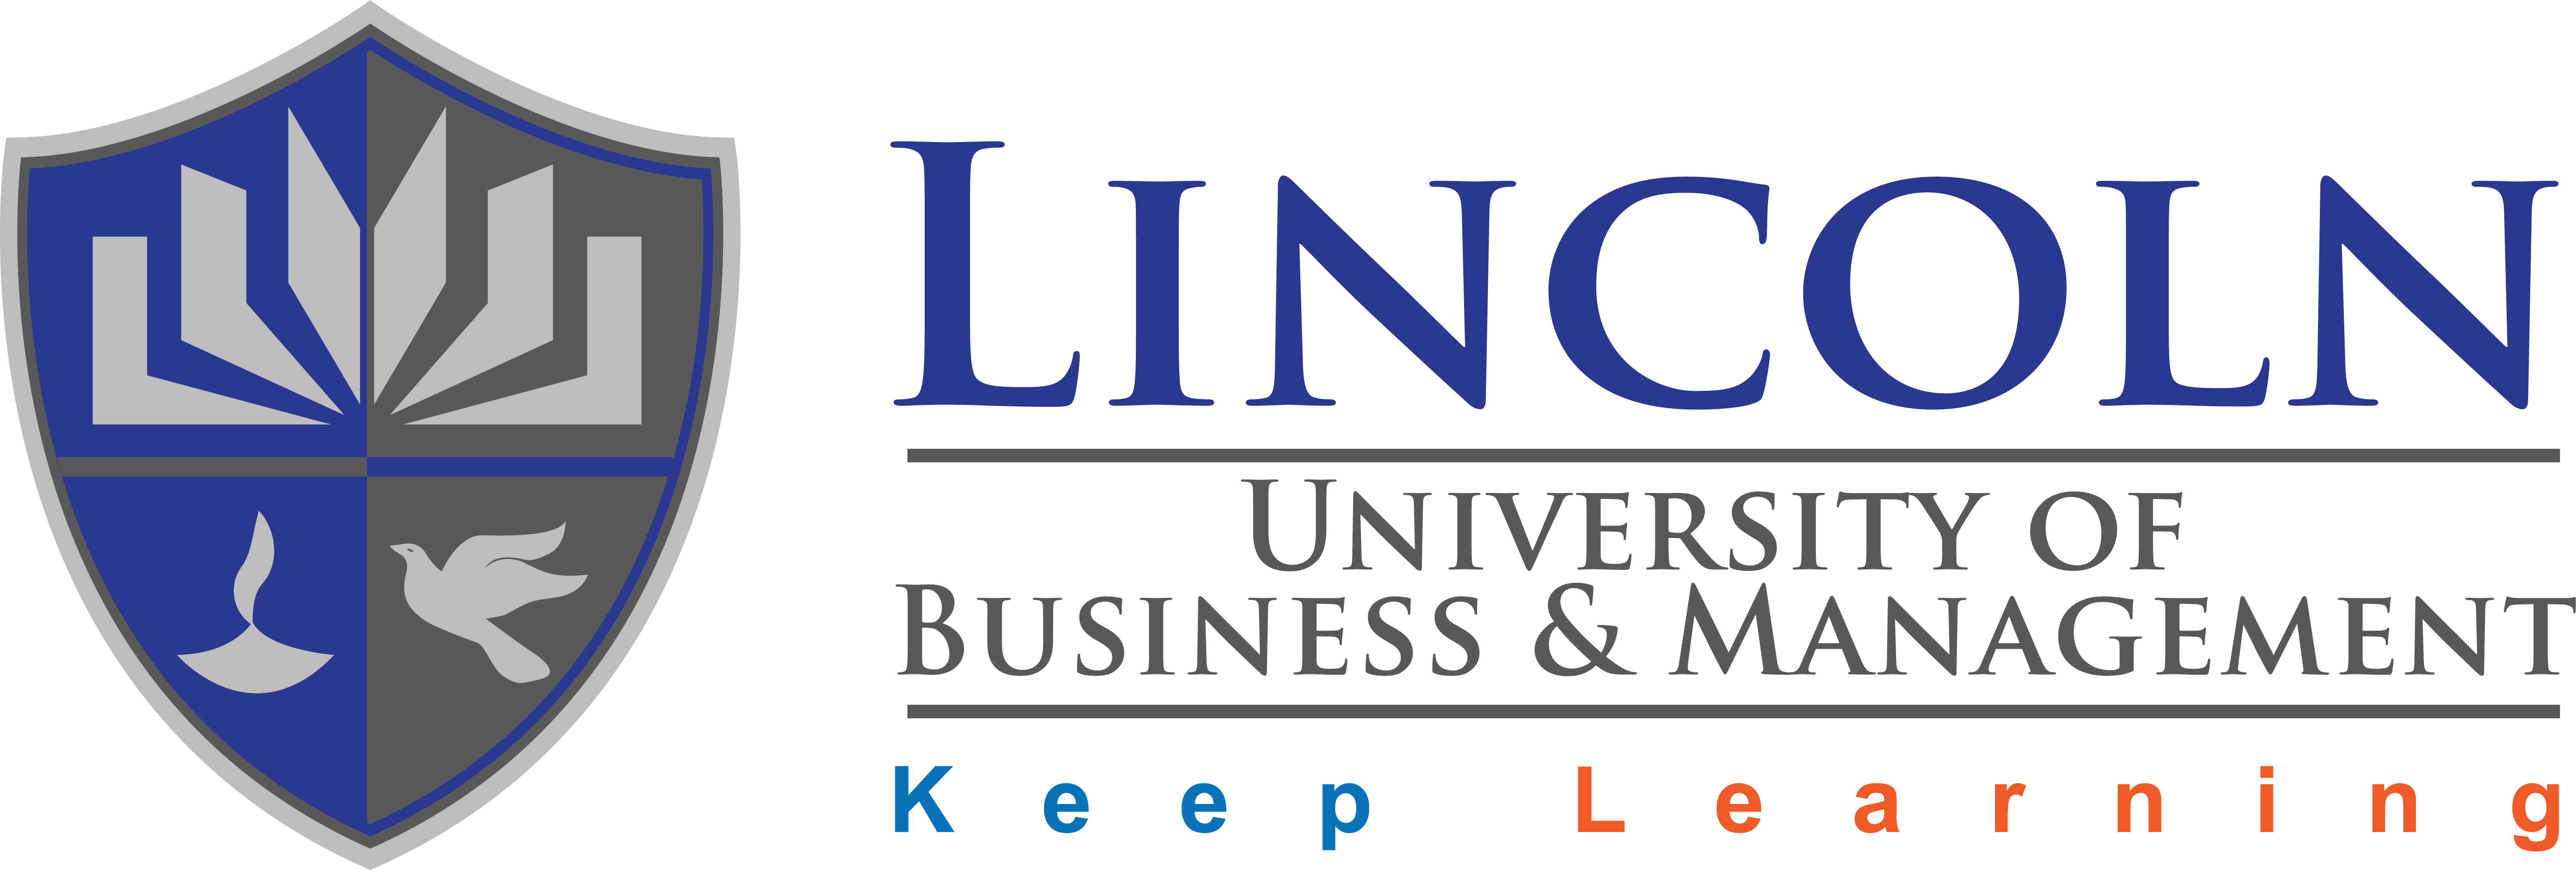 More about Lincoln University of Business & Management